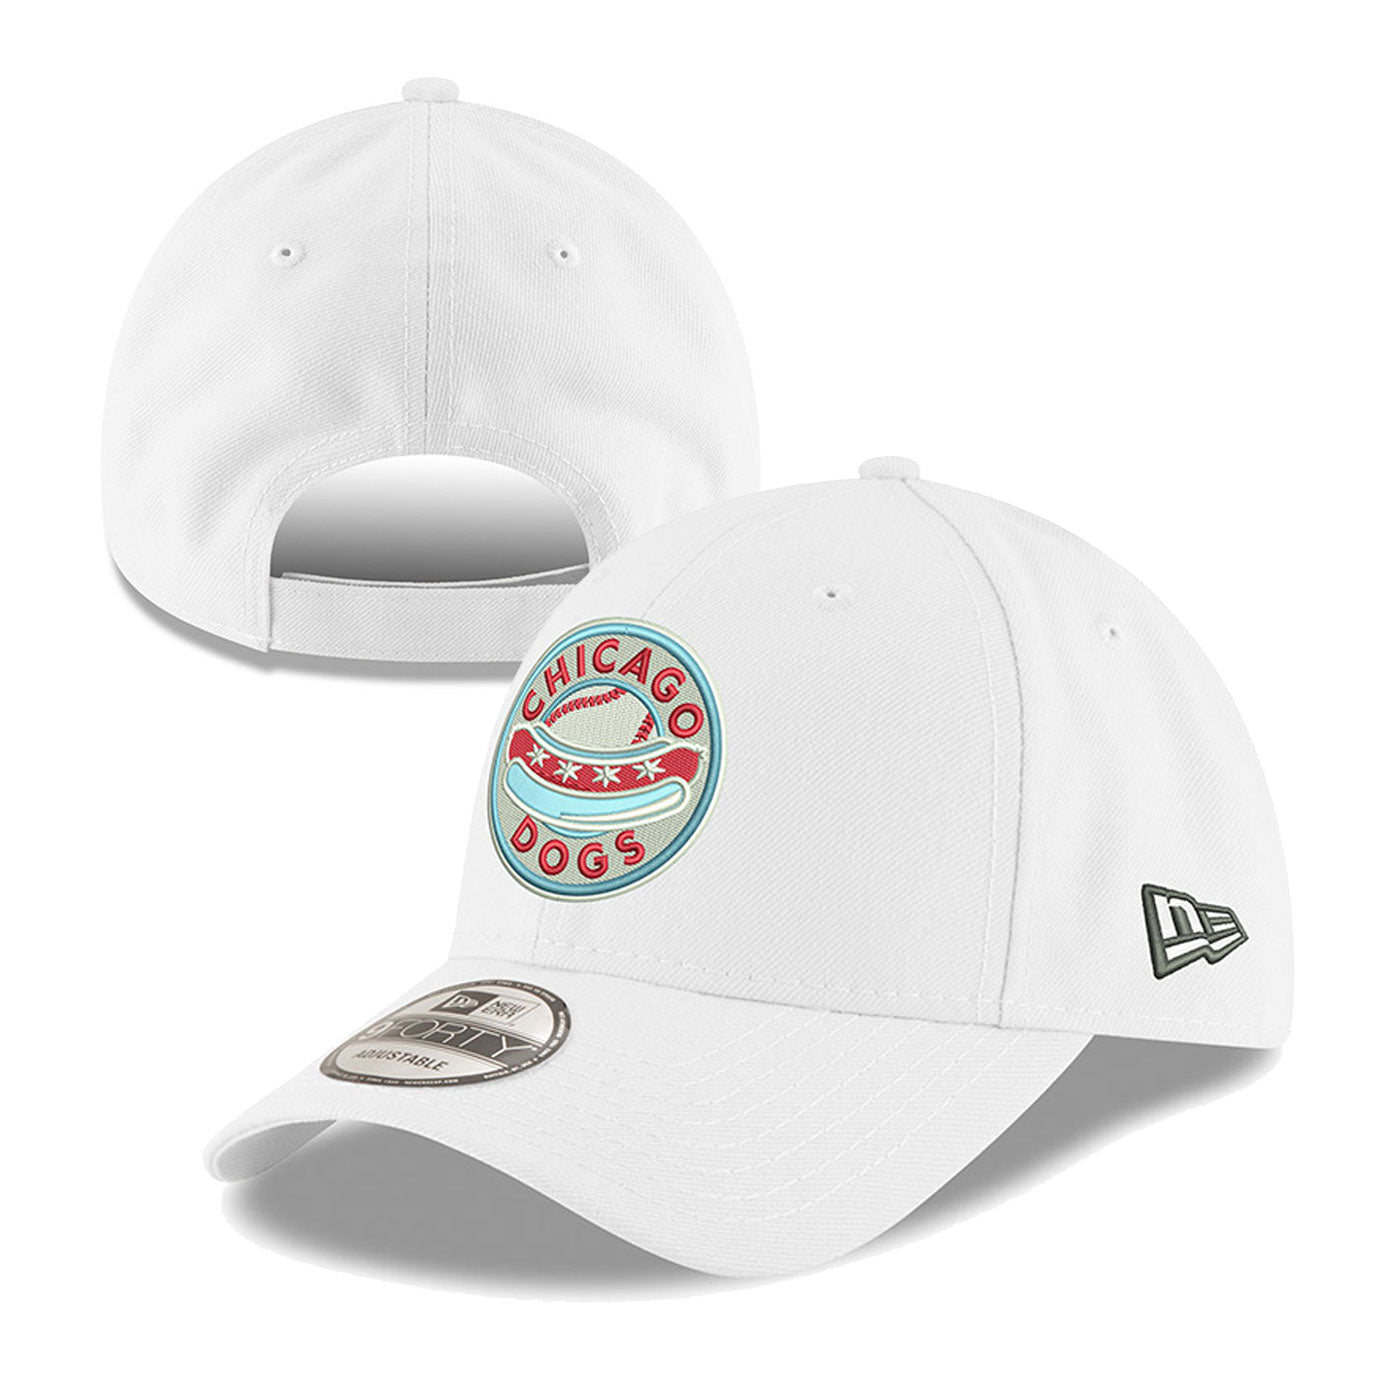 Chicago Dogs New Era 9FORTY Primary Core Adjustable Field Cap - White - Chicago Dogs Team Store